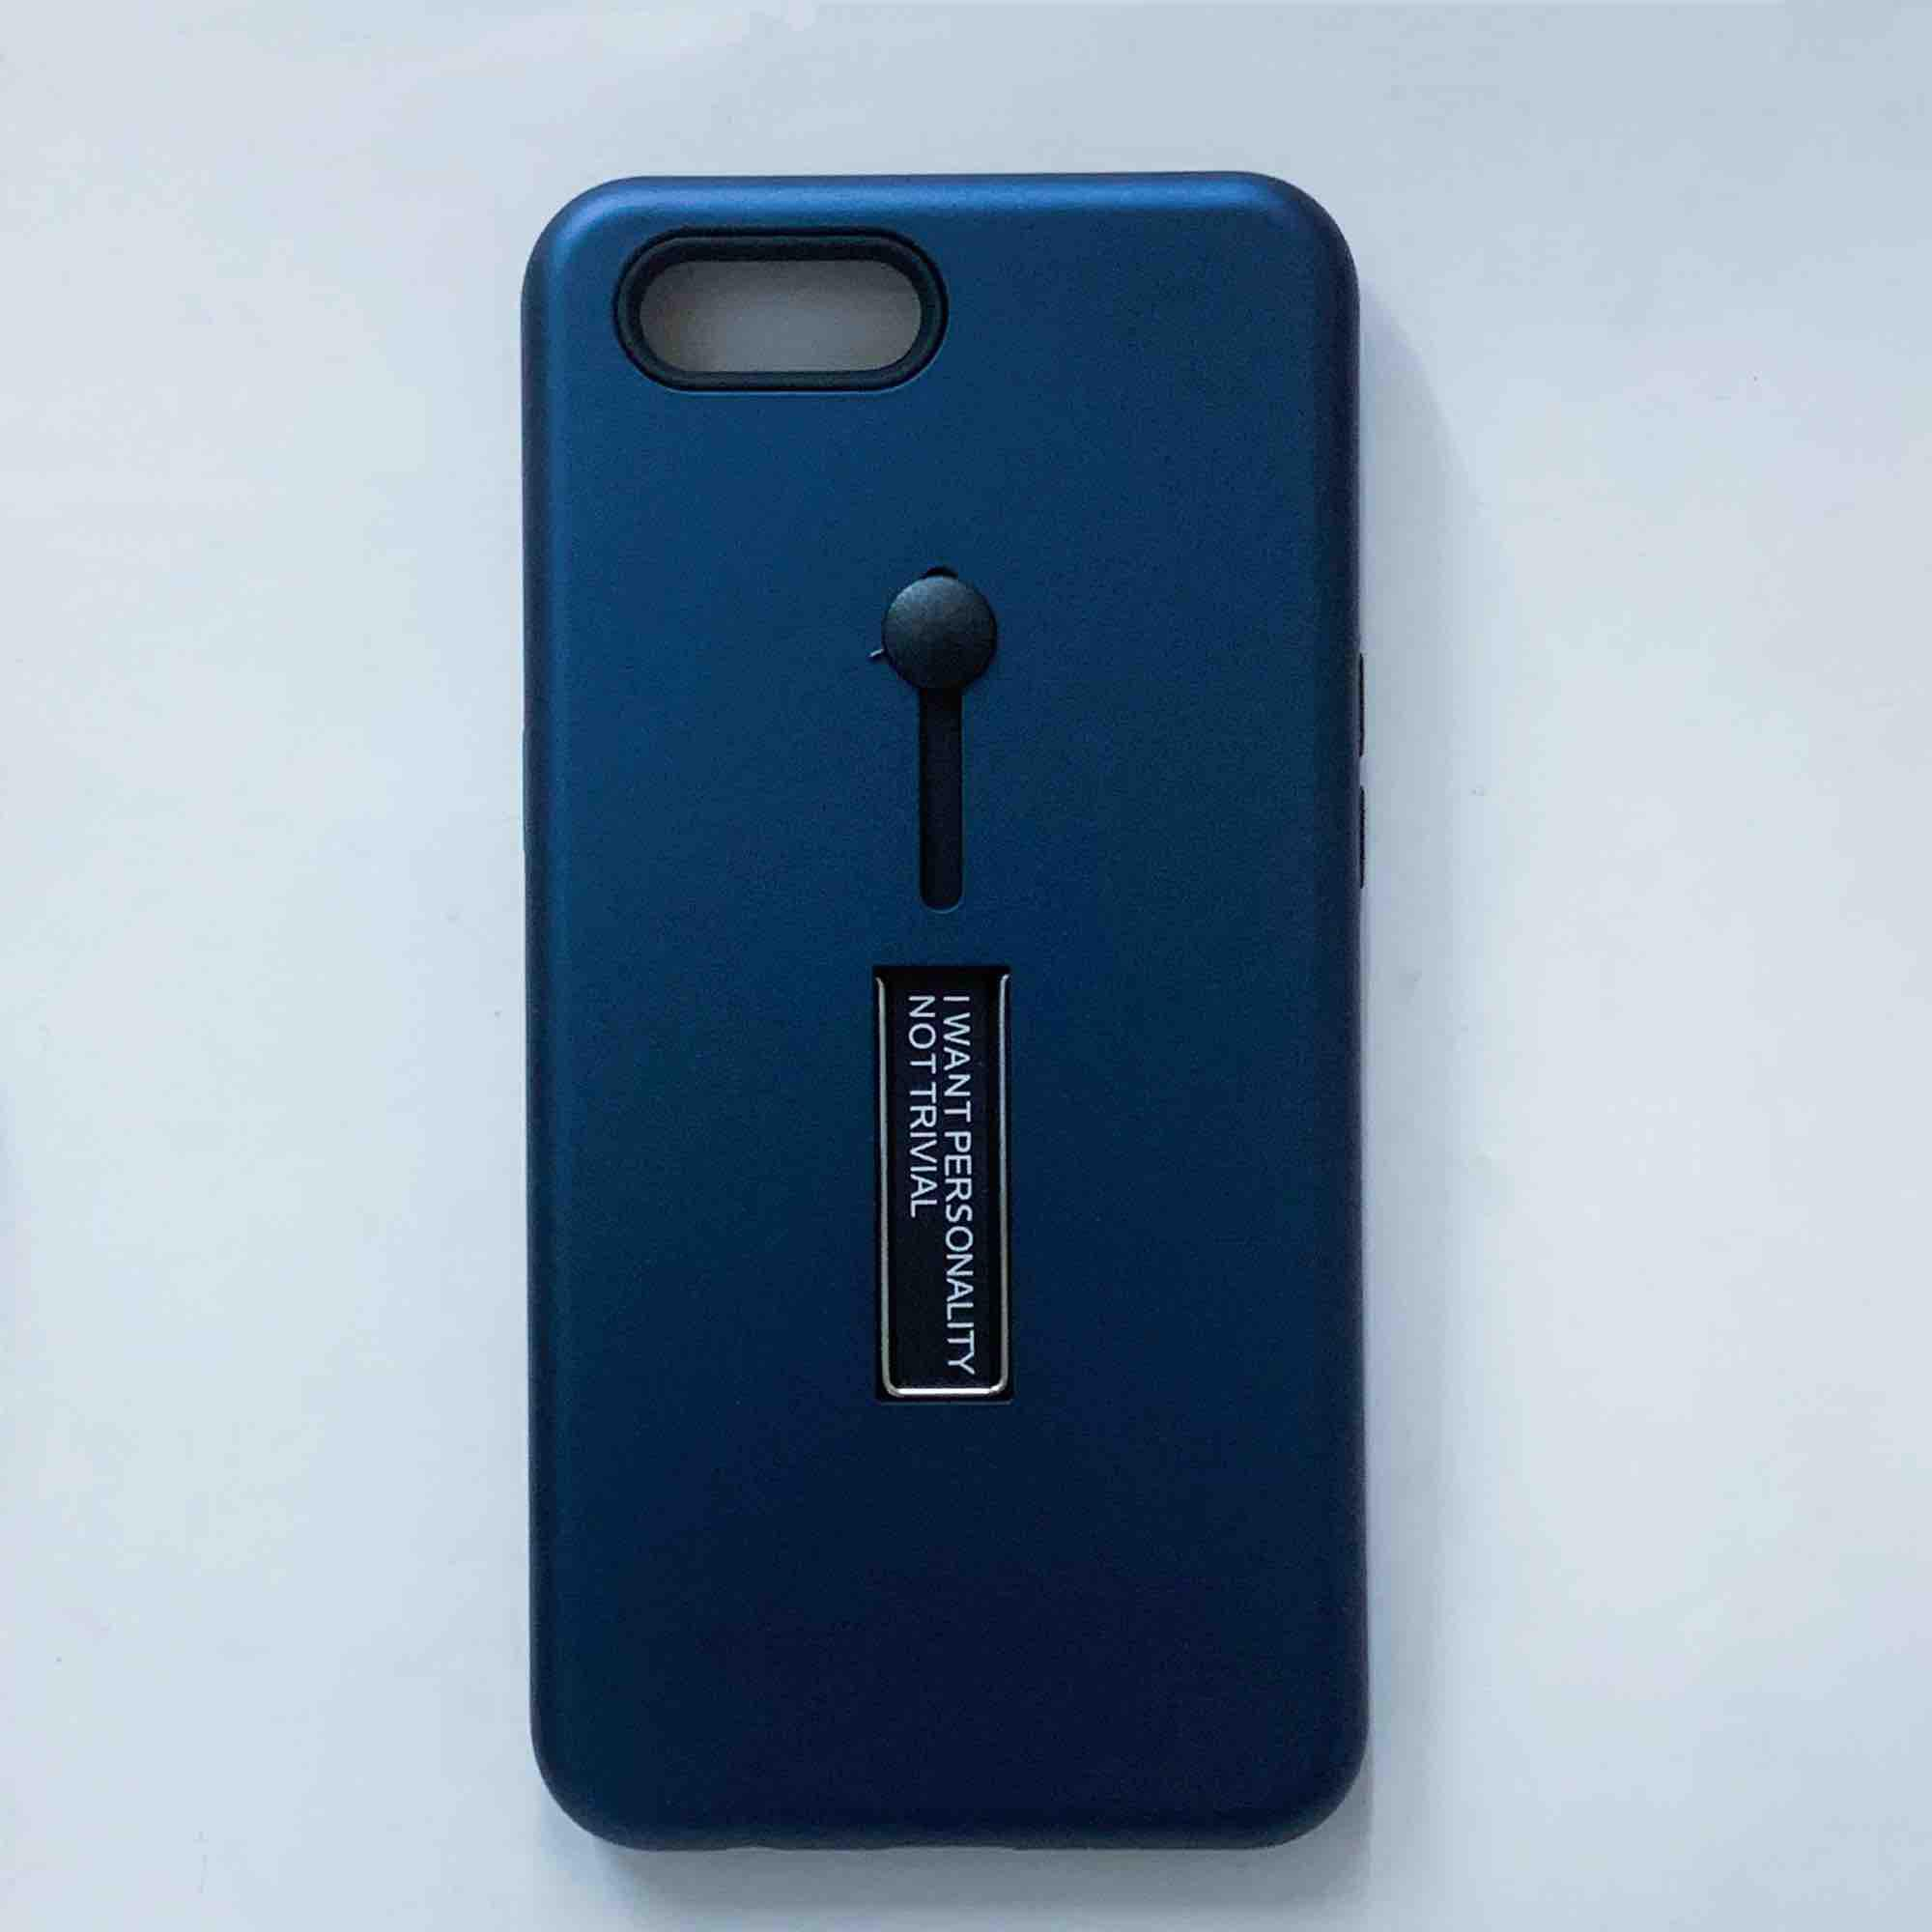 e54873d9ebae6f Phone Cases for sale - Cellphone Cases prices